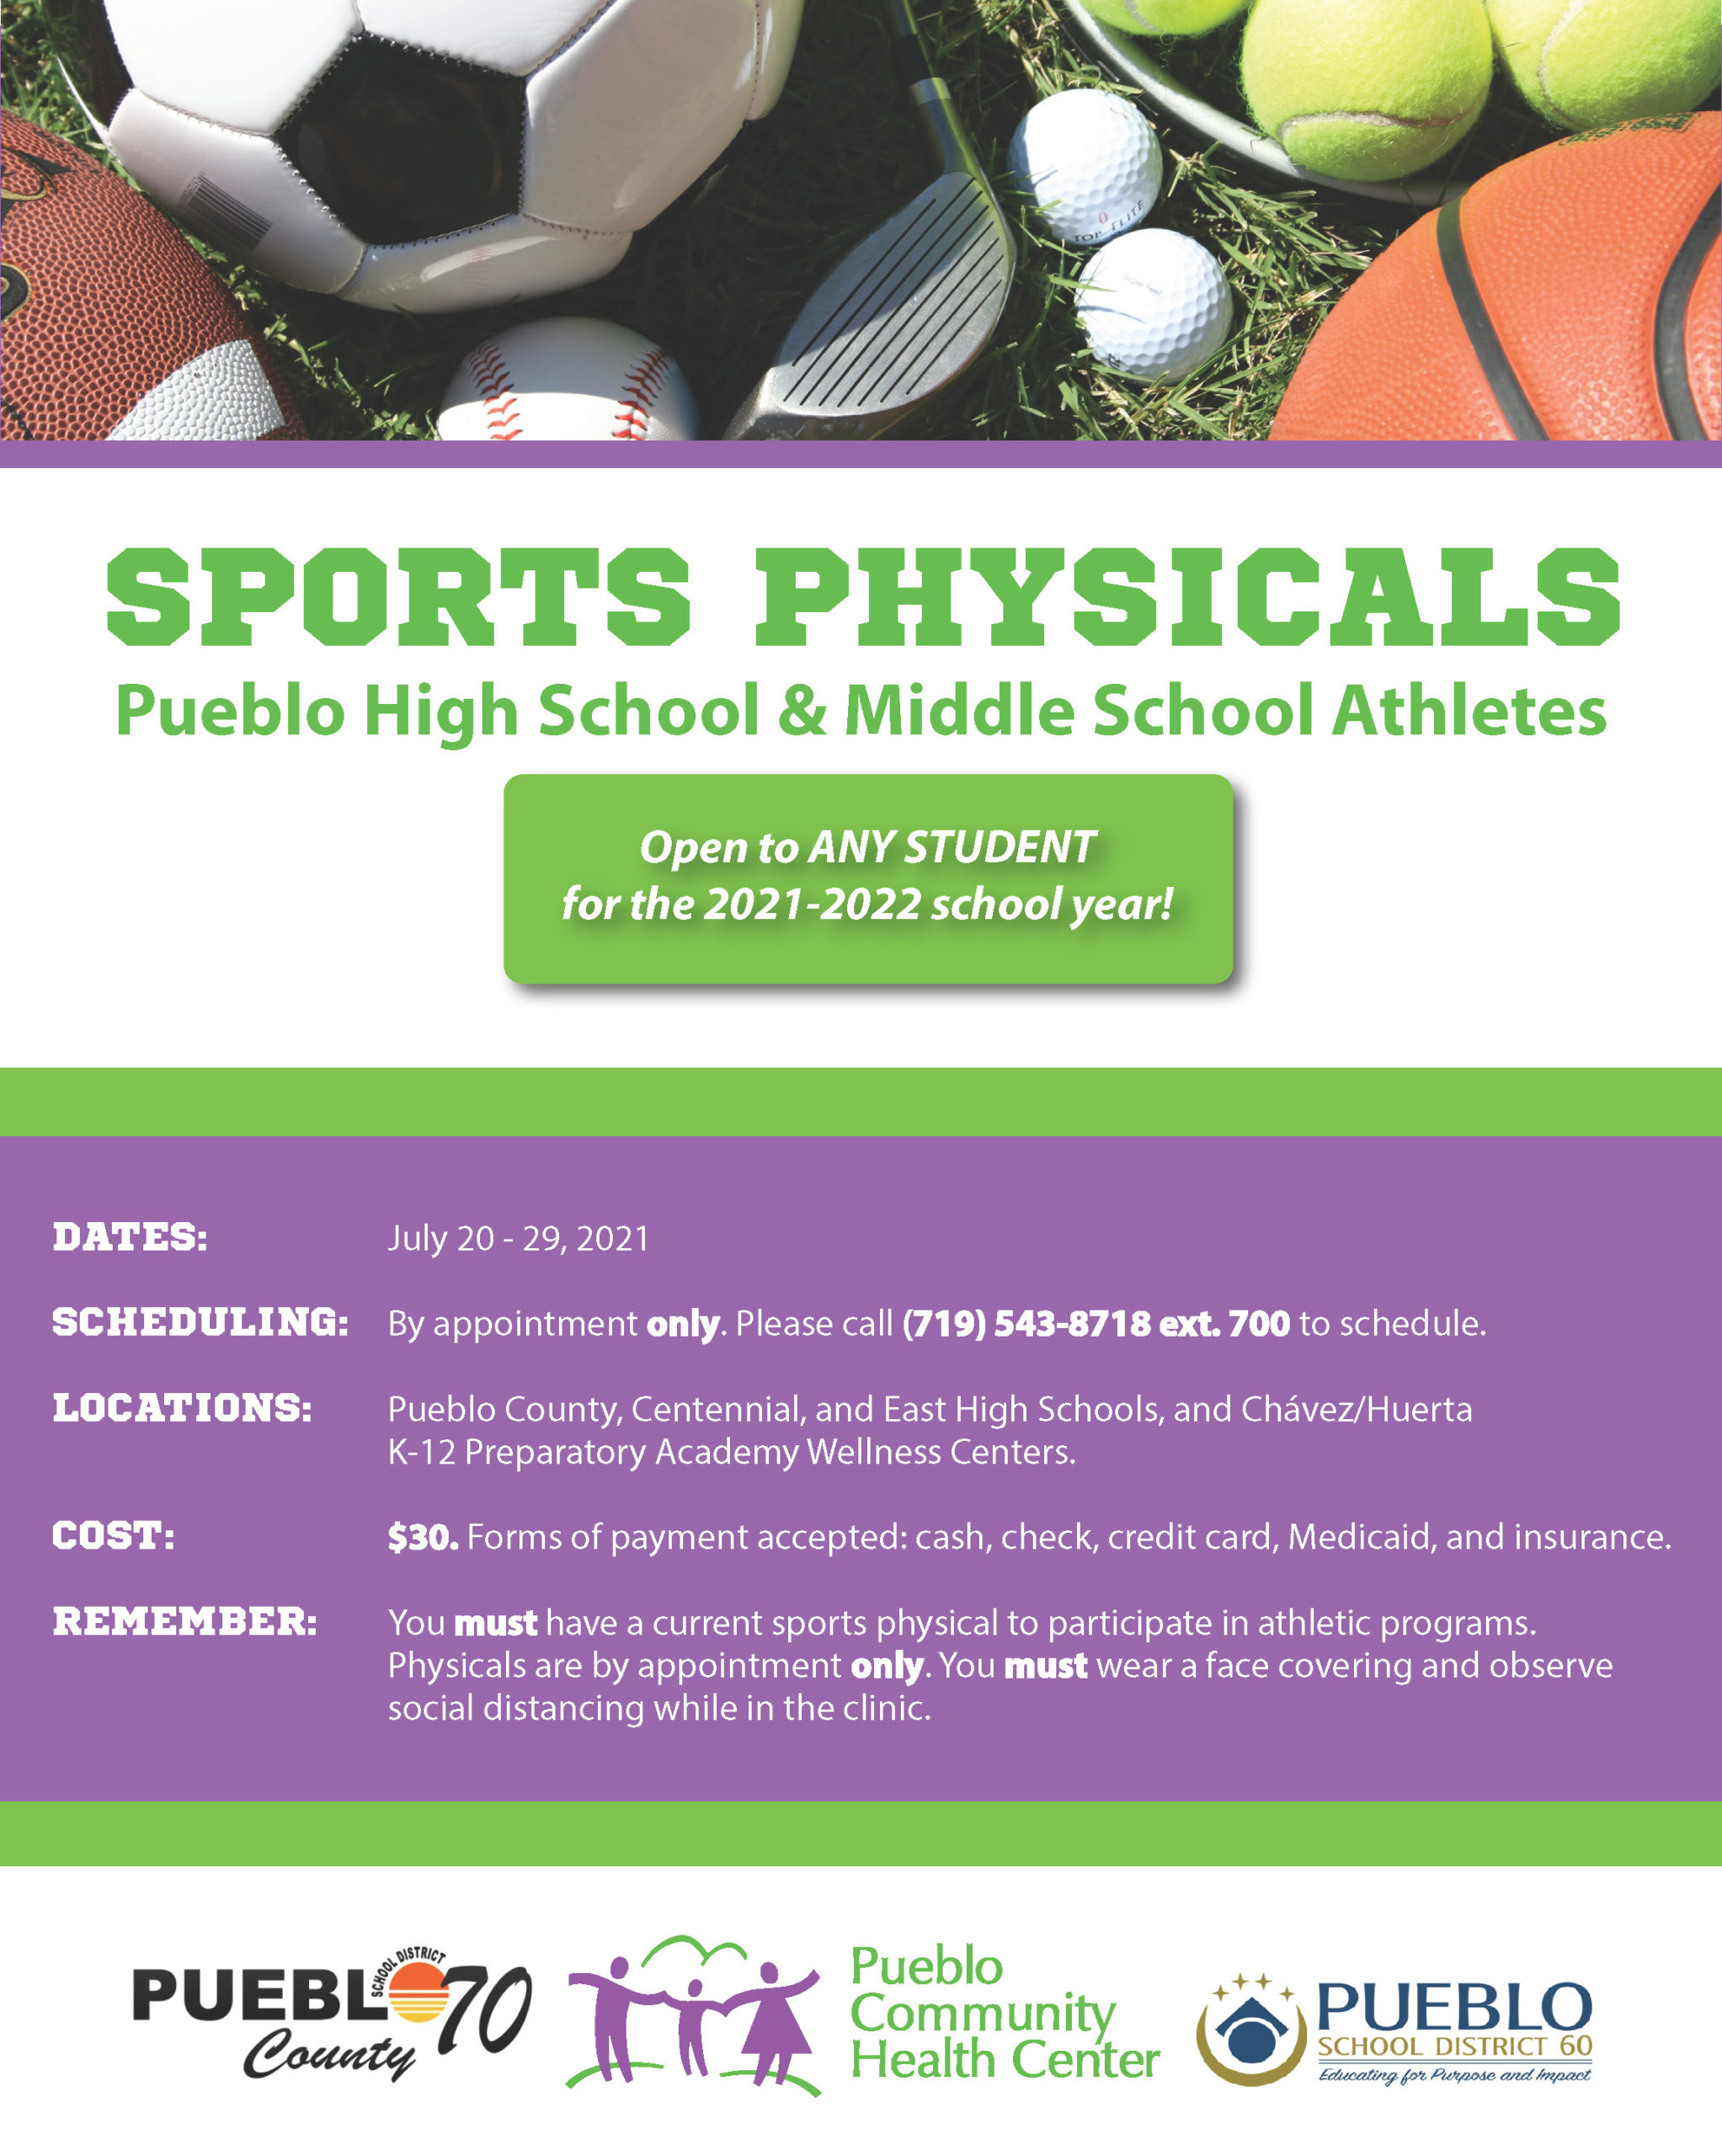 2021 SBWC Sports Physicals Flyer